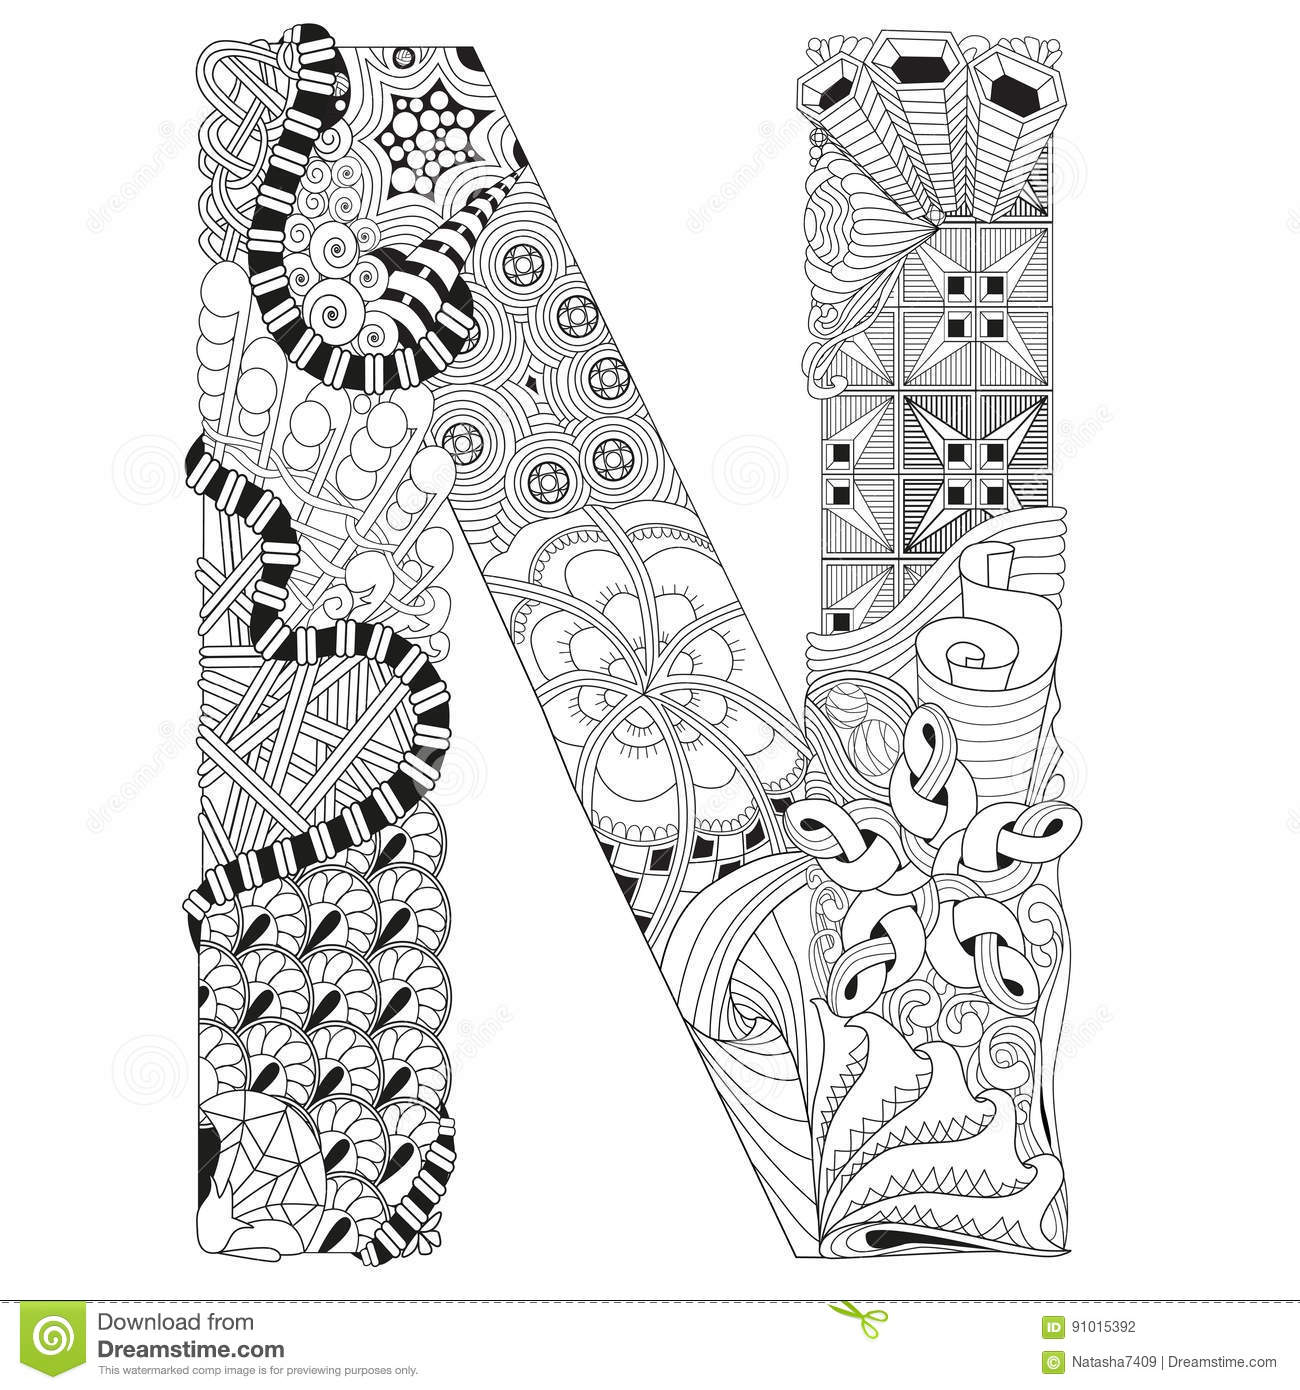 letter n coloring pages for adults printable letter n coloring page for your loved ones letter for pages adults coloring n